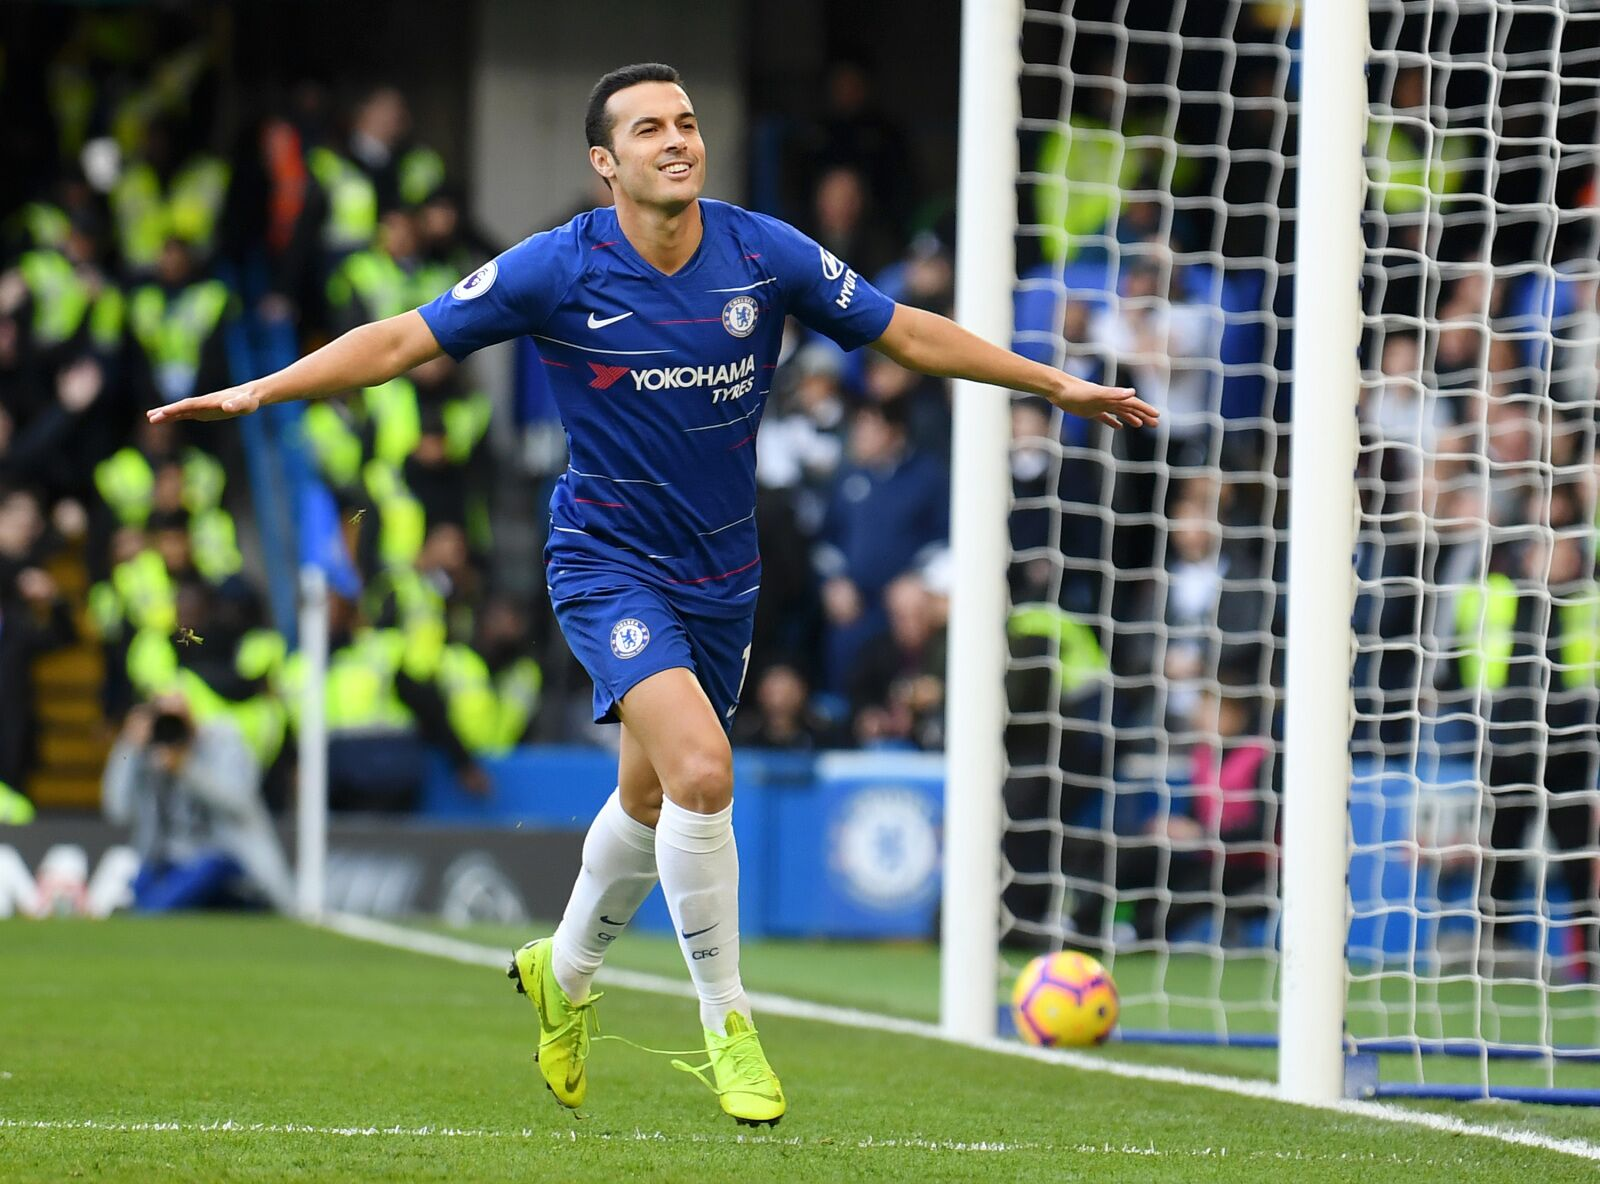 Chelsea should build squad for more goals across the pitch, not just at striker